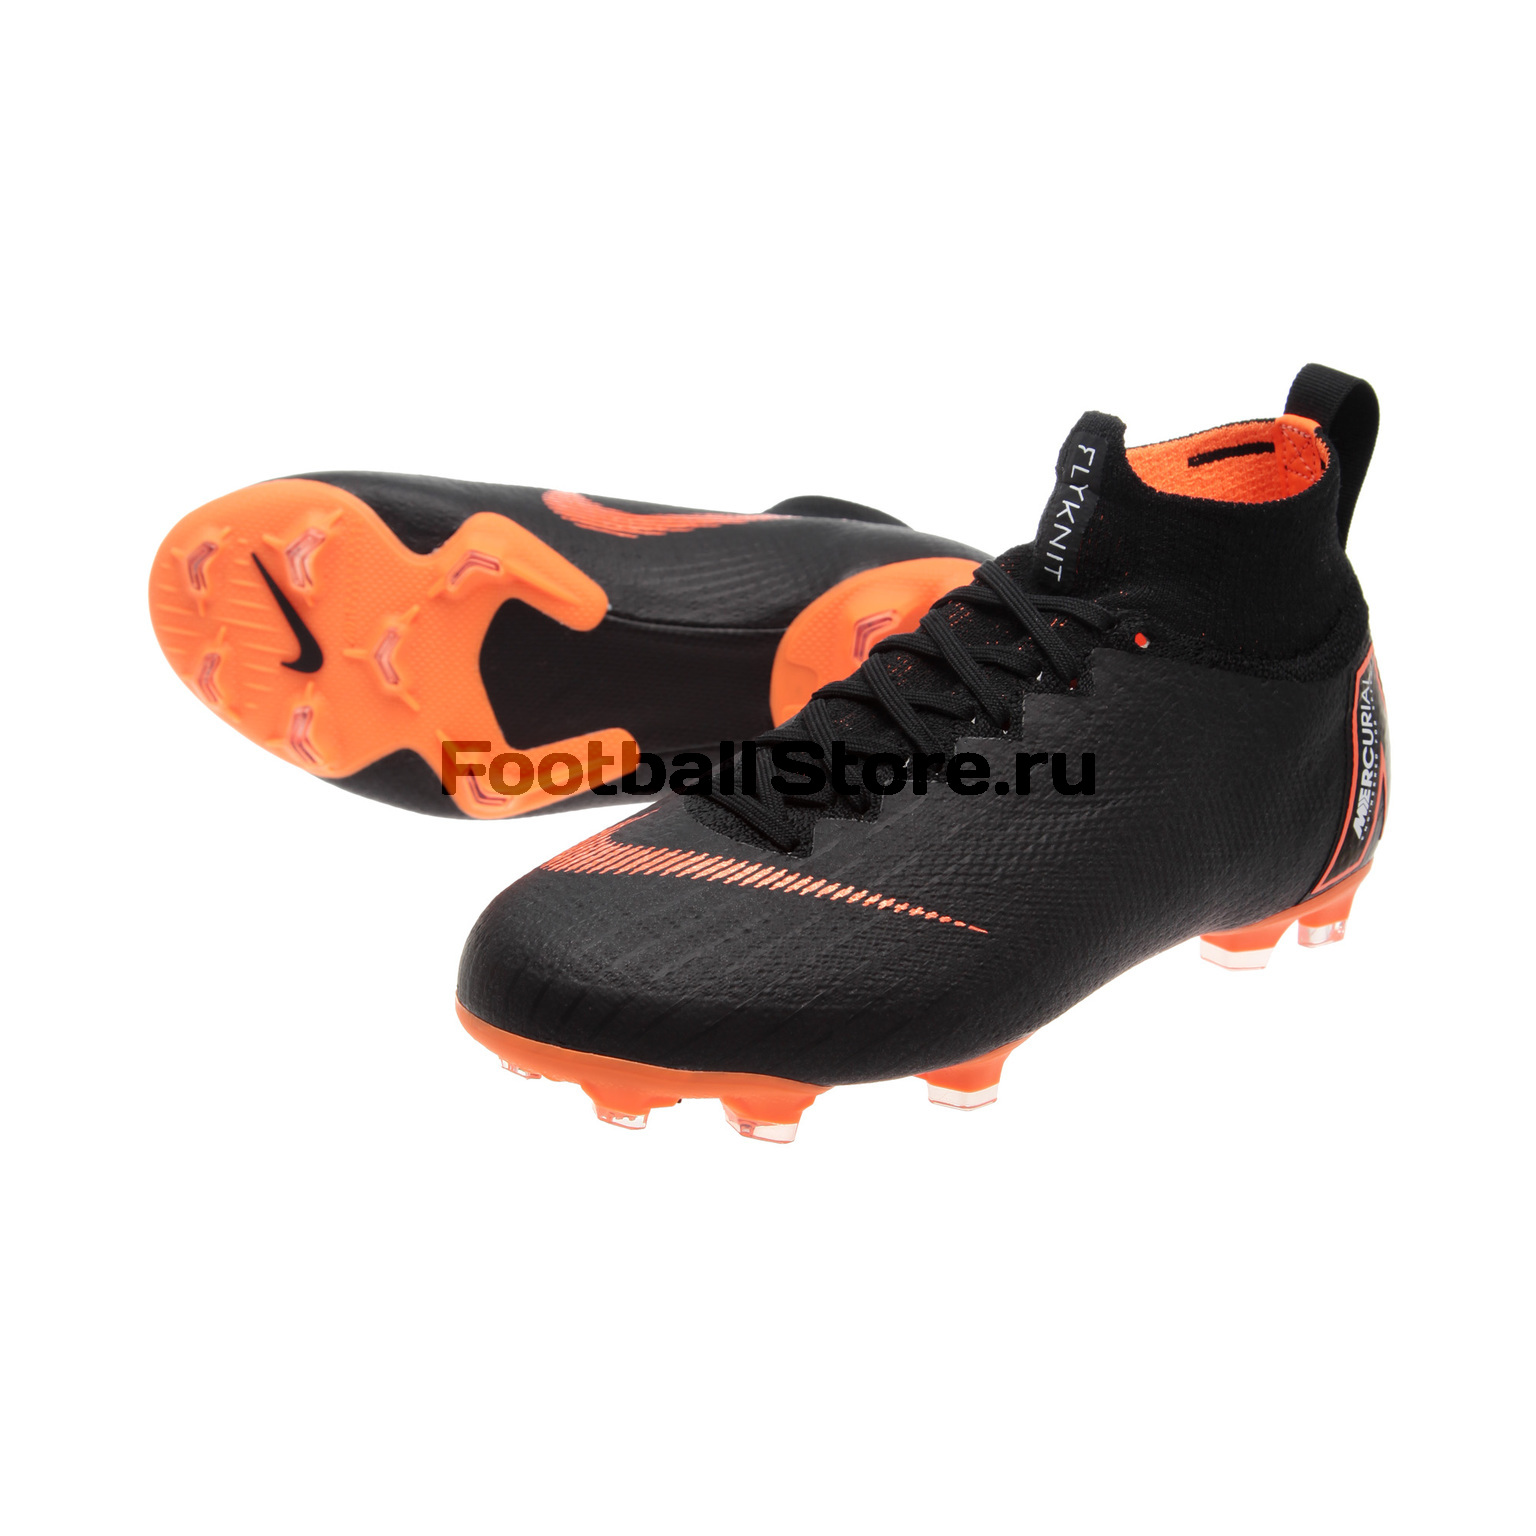 Бутсы Nike JR Superfly 6 Elite FG AH7340-081 детские бутсы nike бутсы nike jr phantom 3 elite df fg ah7292 081